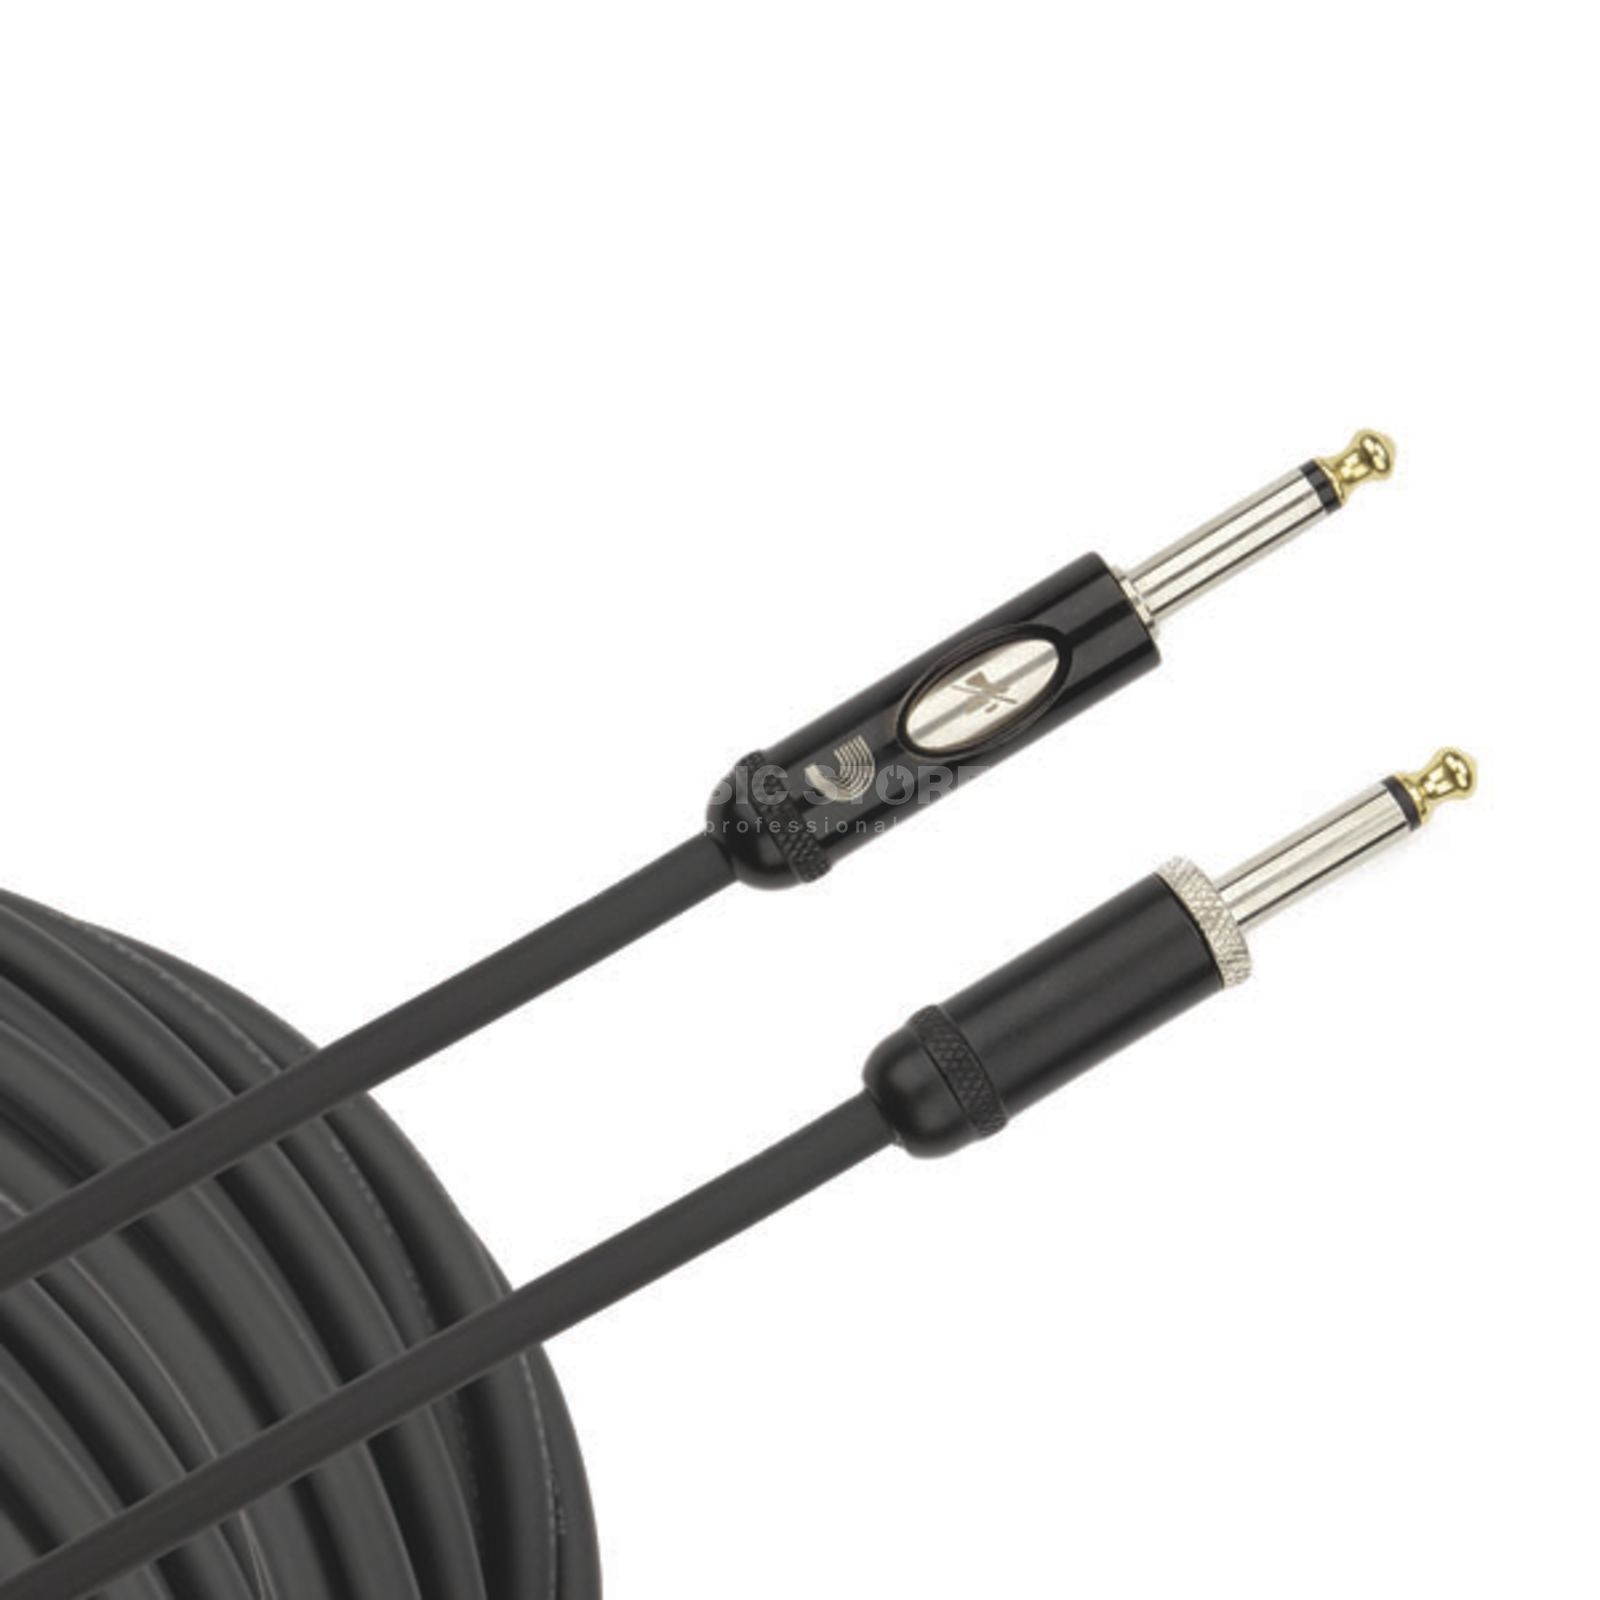 Planet Waves Kill Switch Instr. Kabel 4,5m American Stage PW-AMSK-15 Produktbild